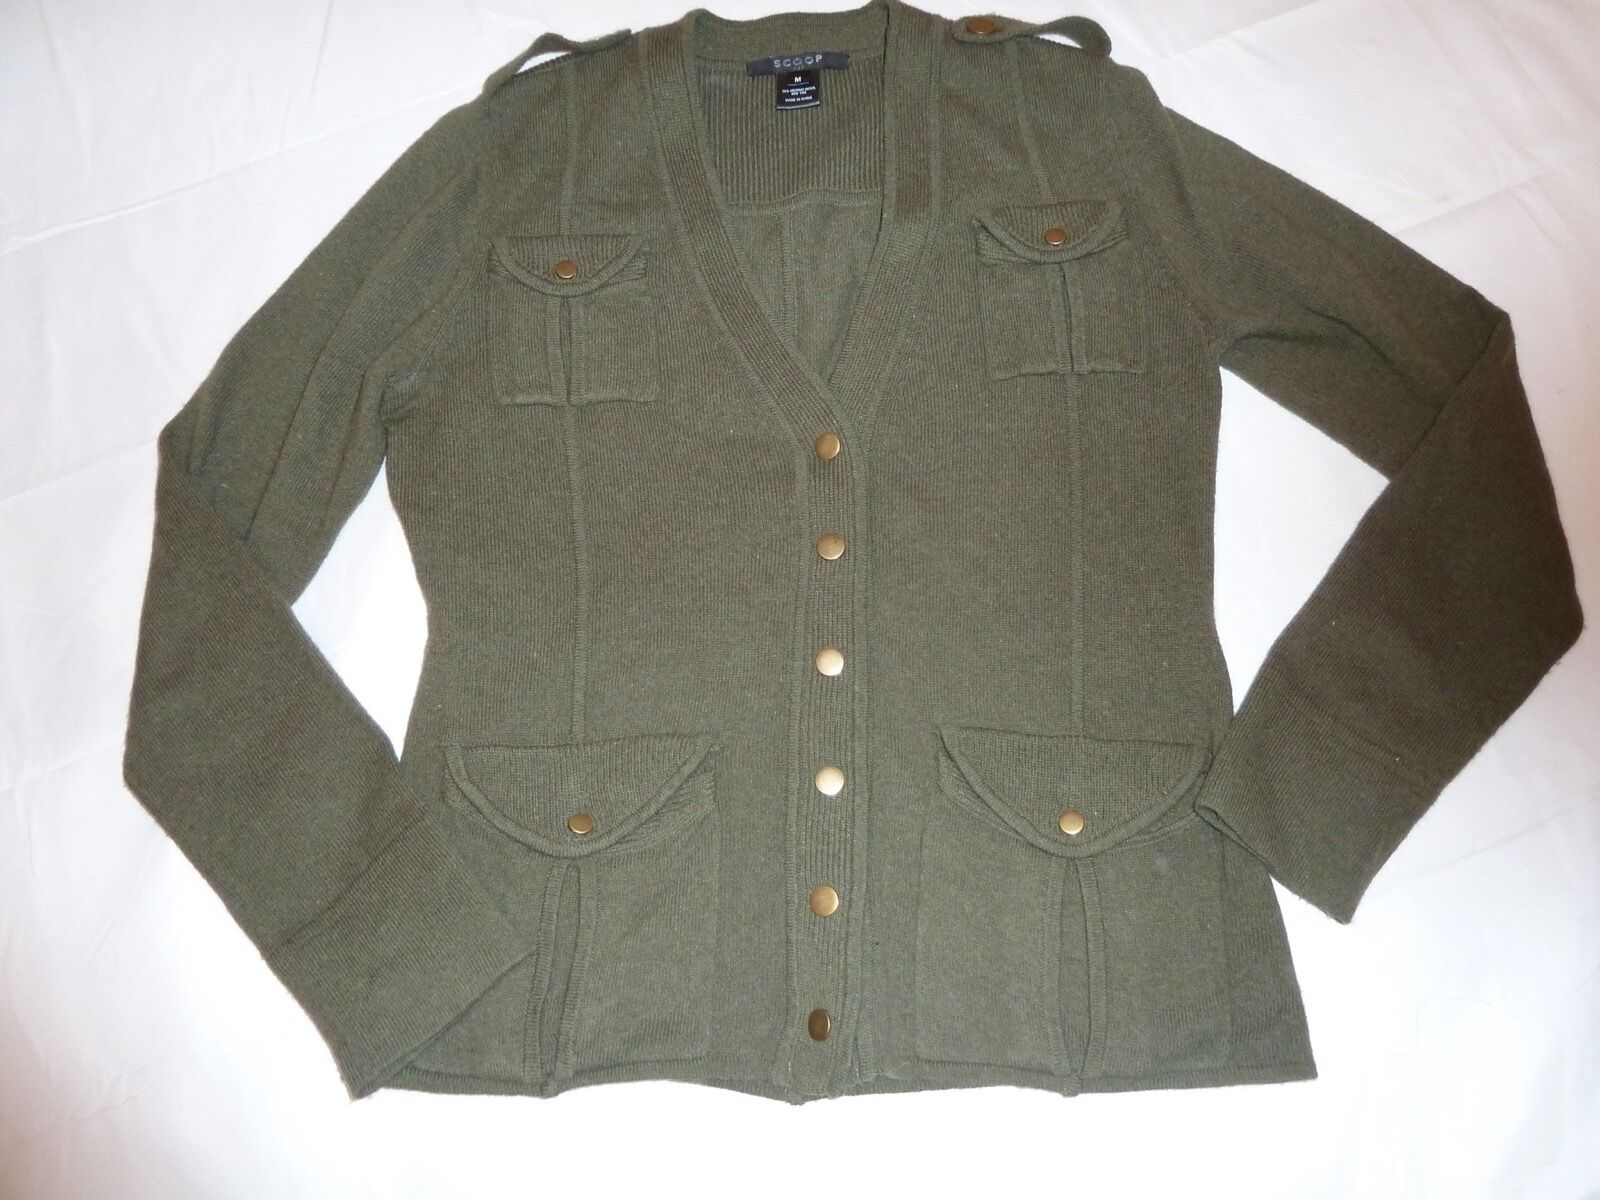 c0c5d06af0d NYC MILITARY GREEN MERINO WOOL YAK CARDIGAN SWEATER SZ. M SCOOP ...